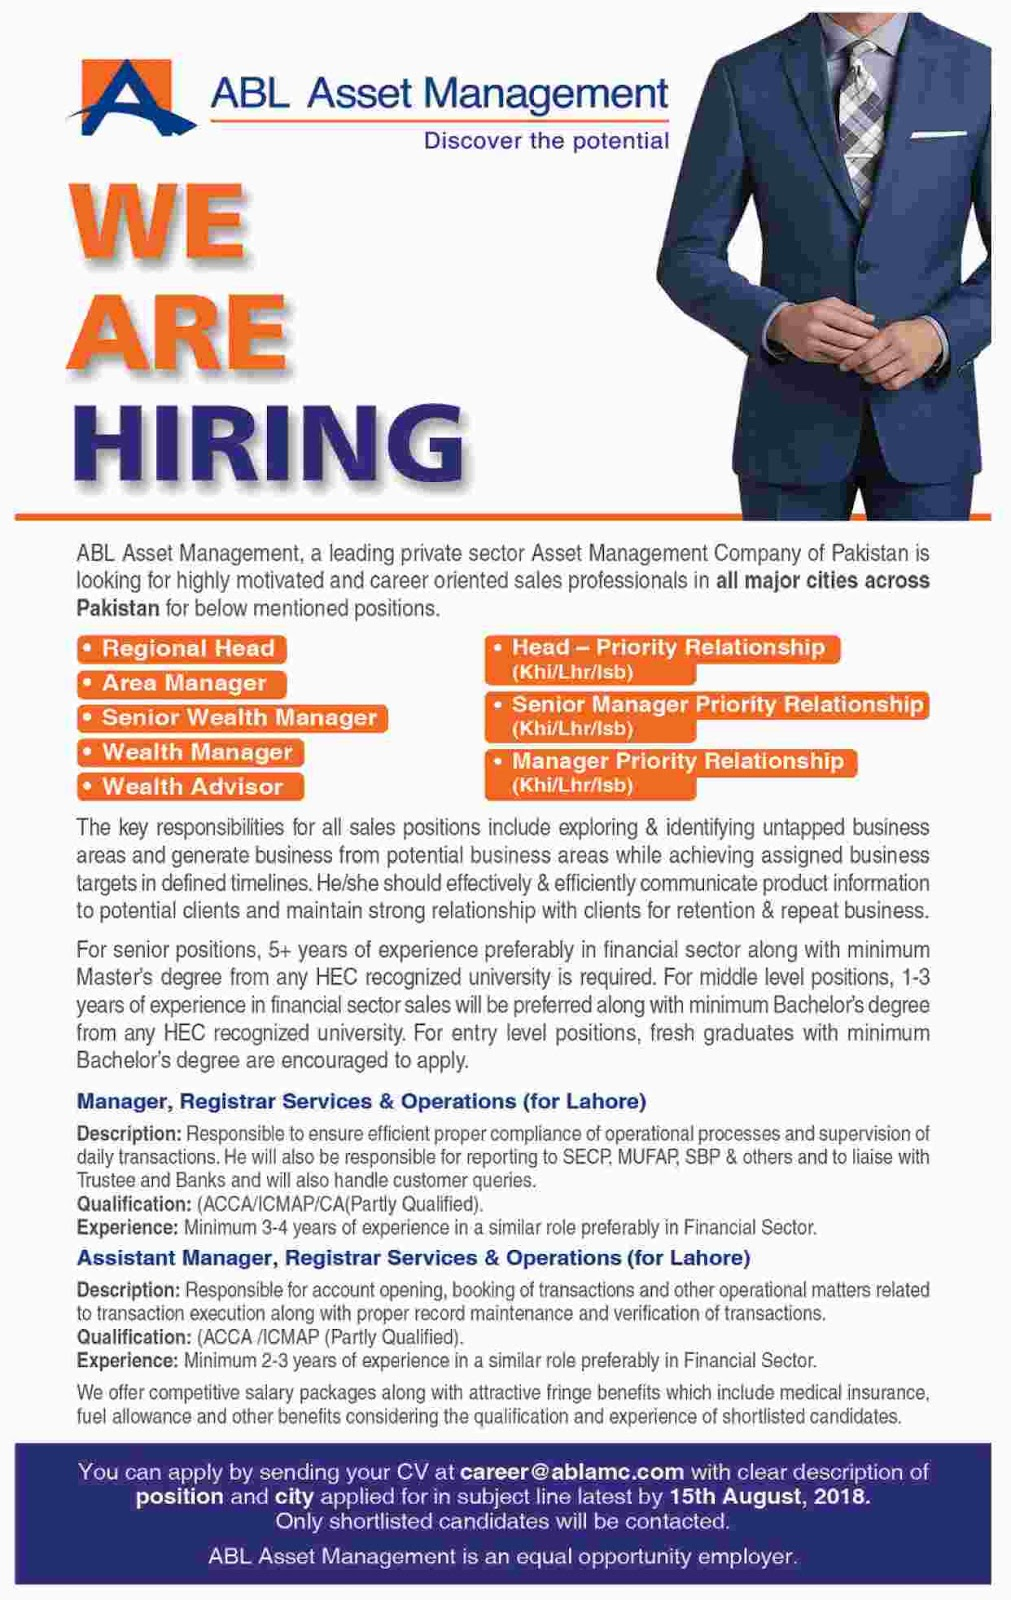 Allied Bank Limited Jobs August 2018 - Naya Pakistan